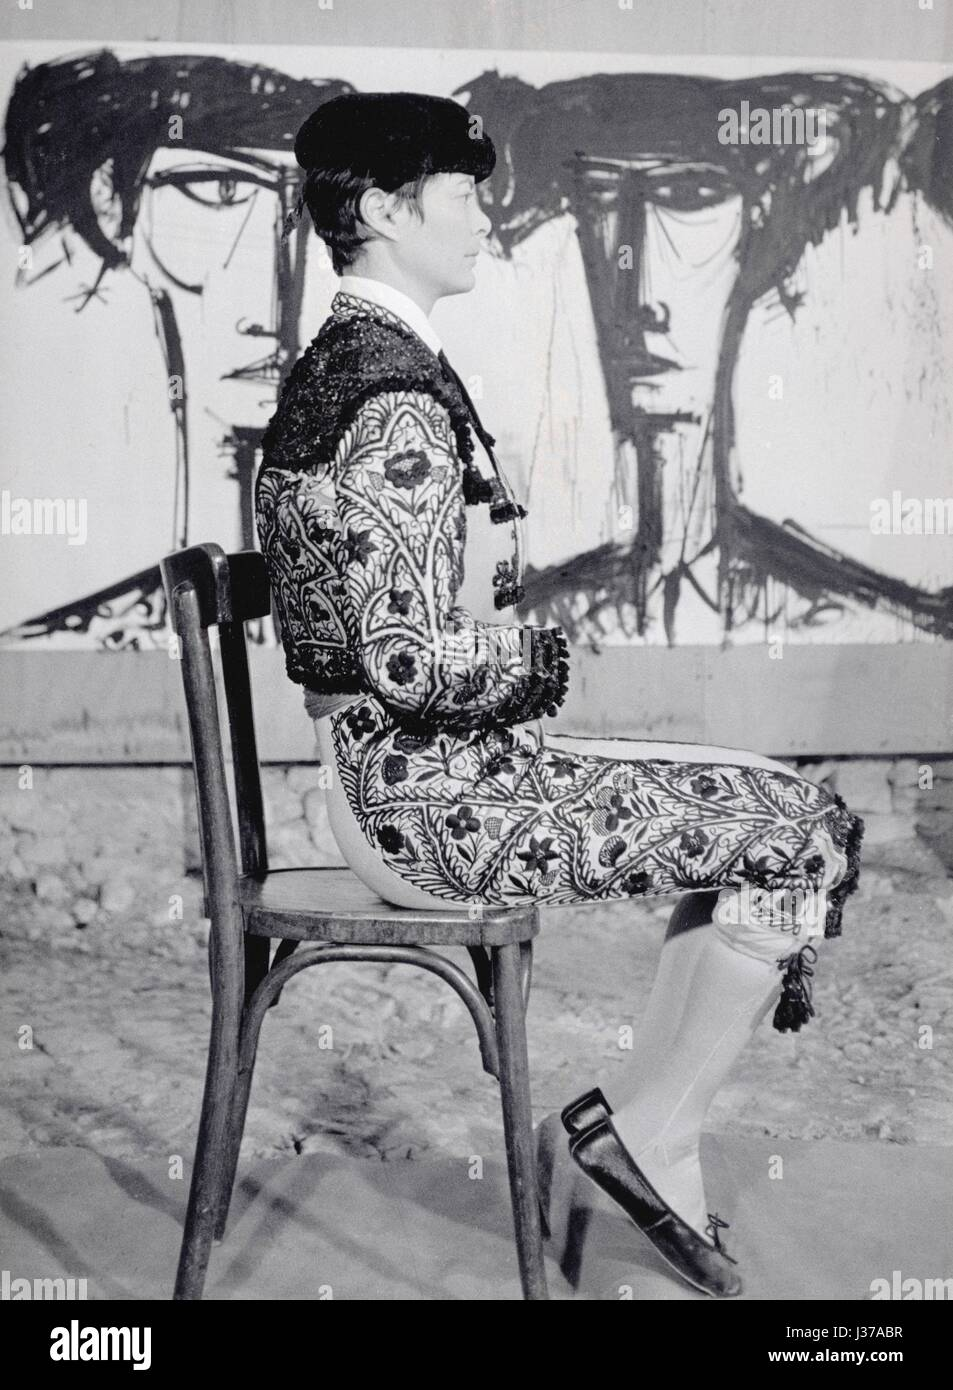 Annabel Buffet, wife of the painter Bernard Buffet, in a torero costume.   Canvas by Bernard Buffet in the background. - Stock Image